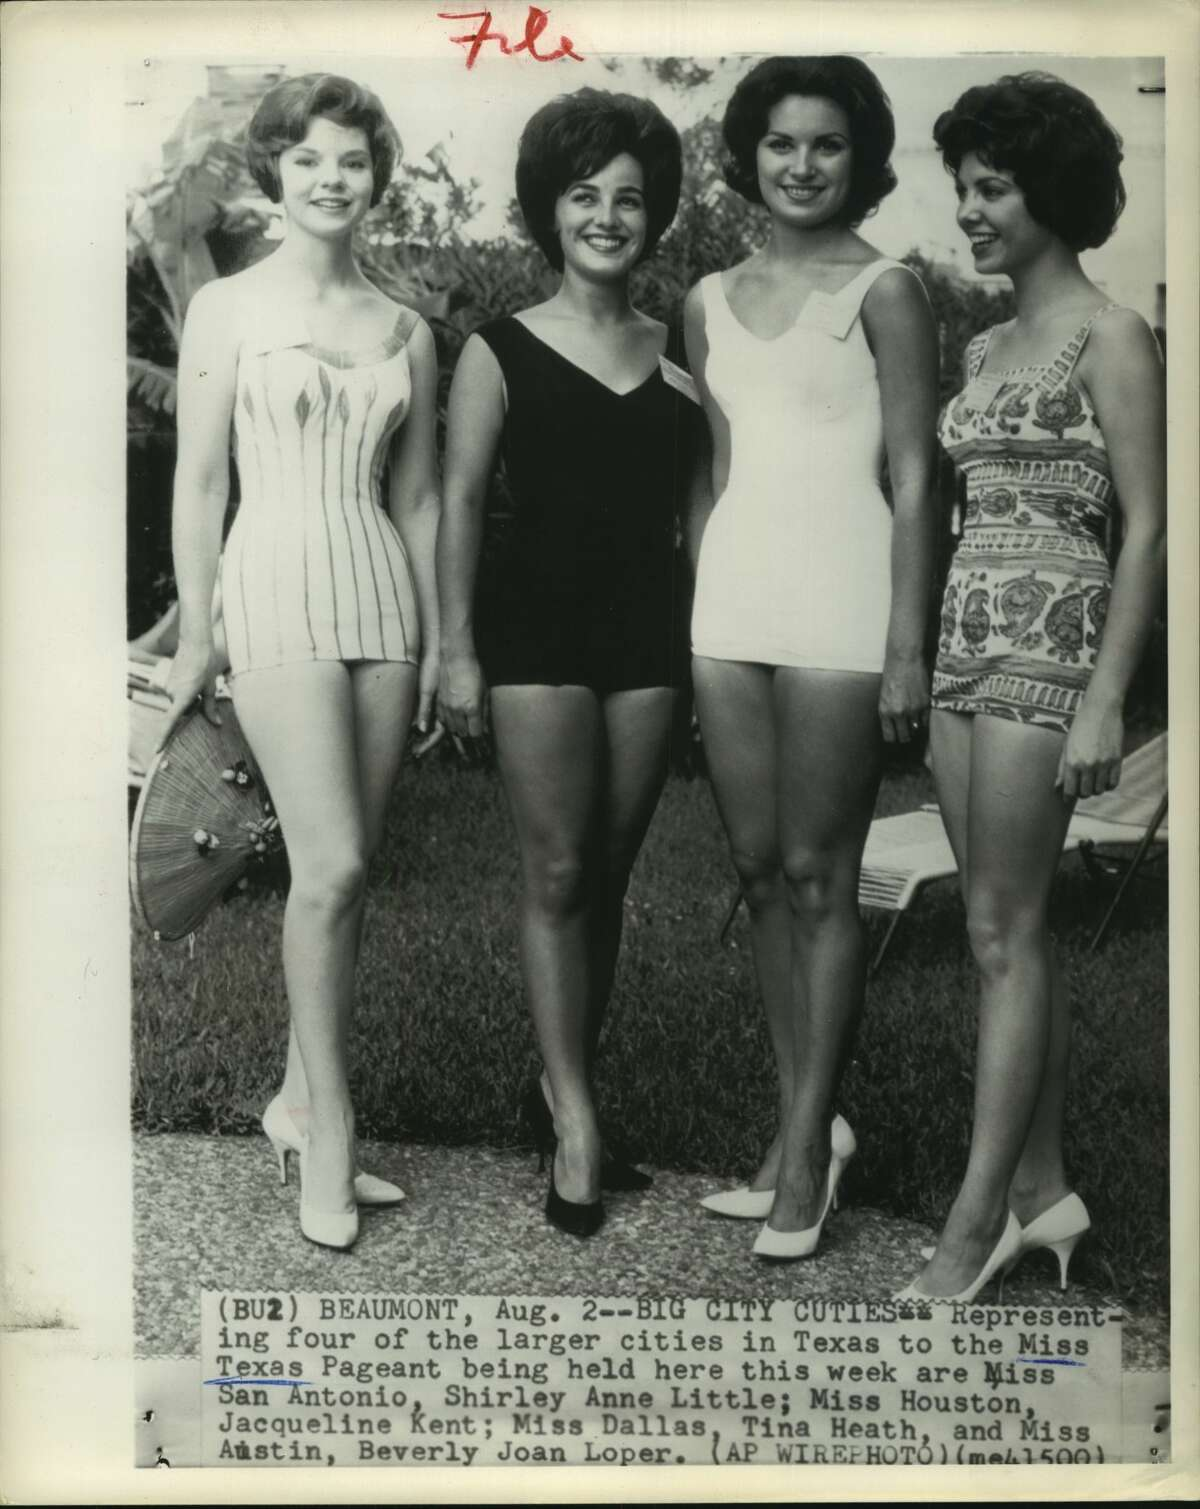 Aug. 2, 1961: Representing four of the largest cities in Texas to the Miss Texas pageant being held here this week are Shirley Anne Little (Miss San Antonio); Jacqueline Kent (Miss Houston); Tina Heath (Miss Dallas), and Beverly Joan Loper (Miss Austin).